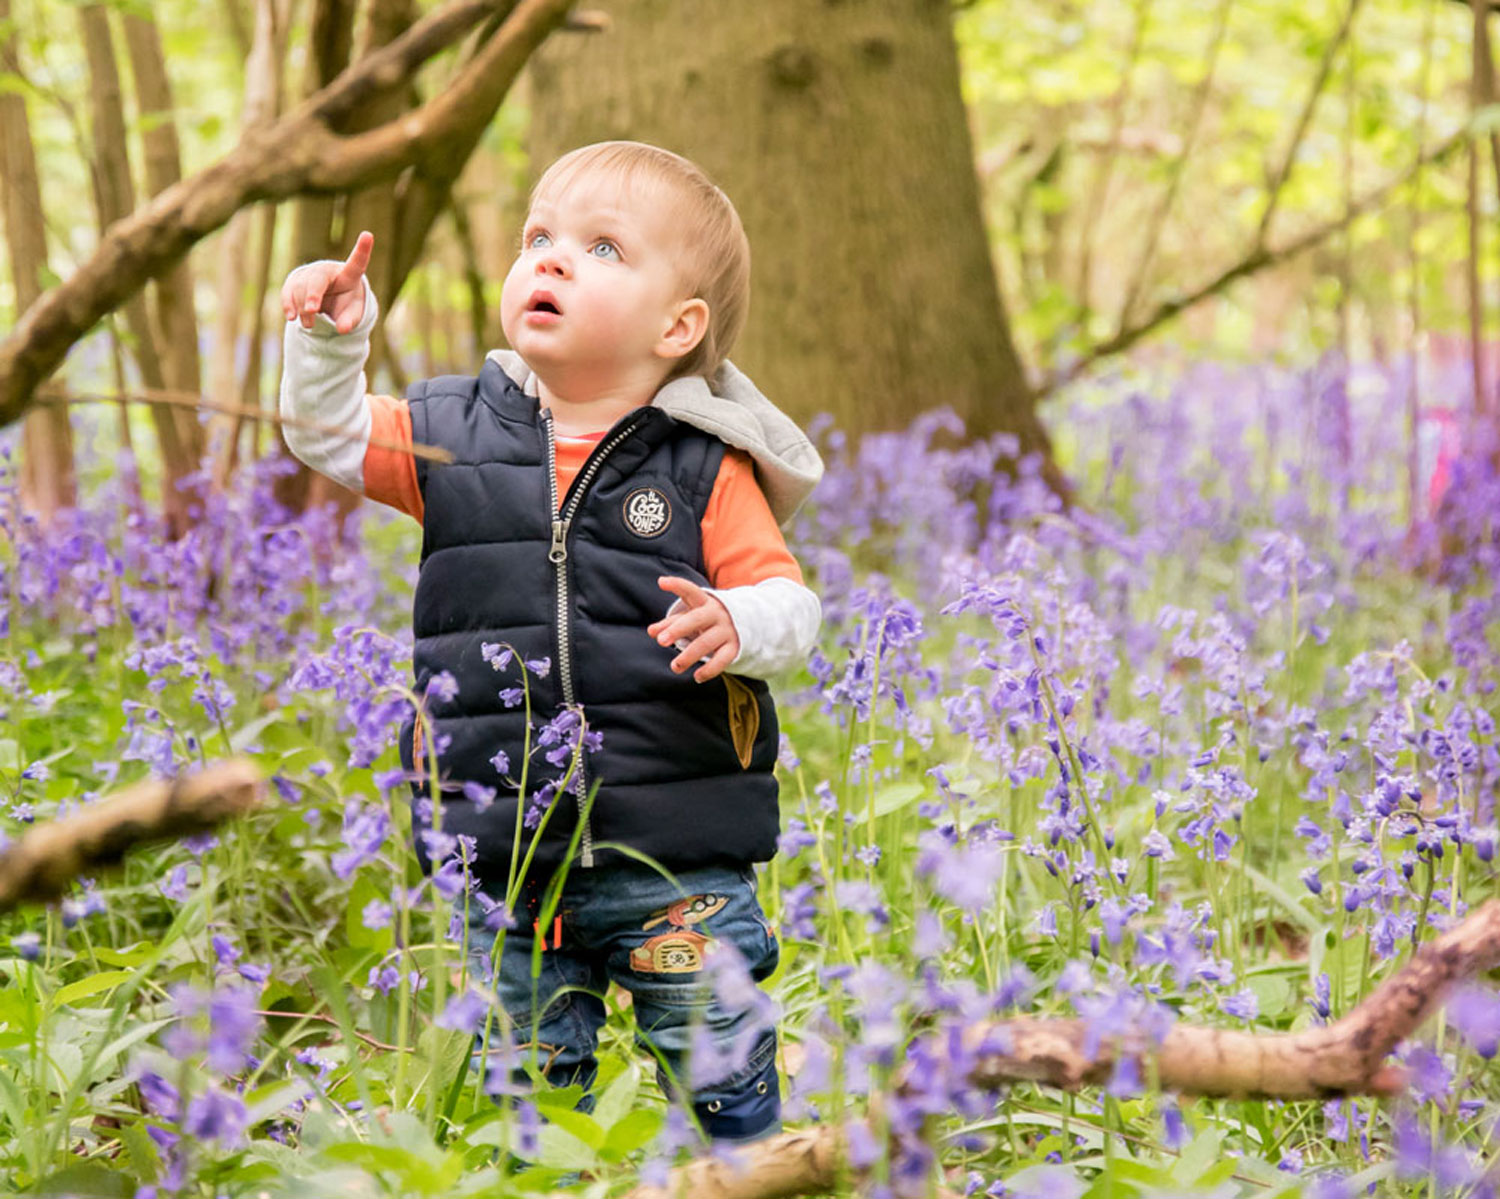 Bluebell Mini Session - My Son has been having photography sessions with Vicki since he was 3 months old, now 17 months. Vicki is amazing with young children photography and can really capture their attention and get great photos. Very child friendly. With some effective props and backdrops and is very adaptable to individual needs.Jen, 5* Facebook Review